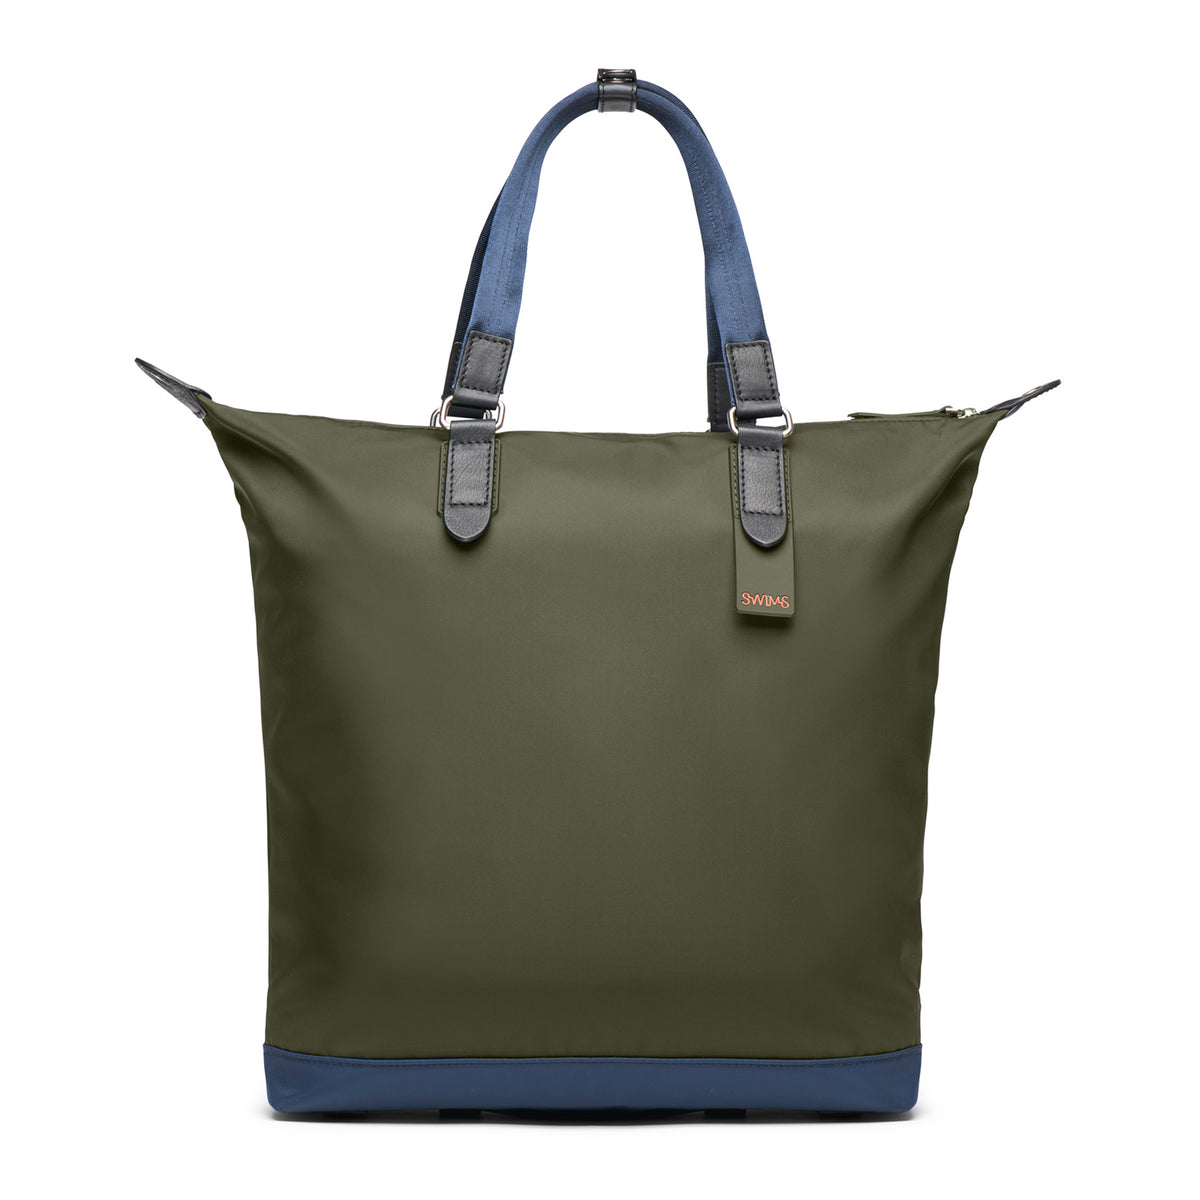 Tote - background::white,variant::Olive